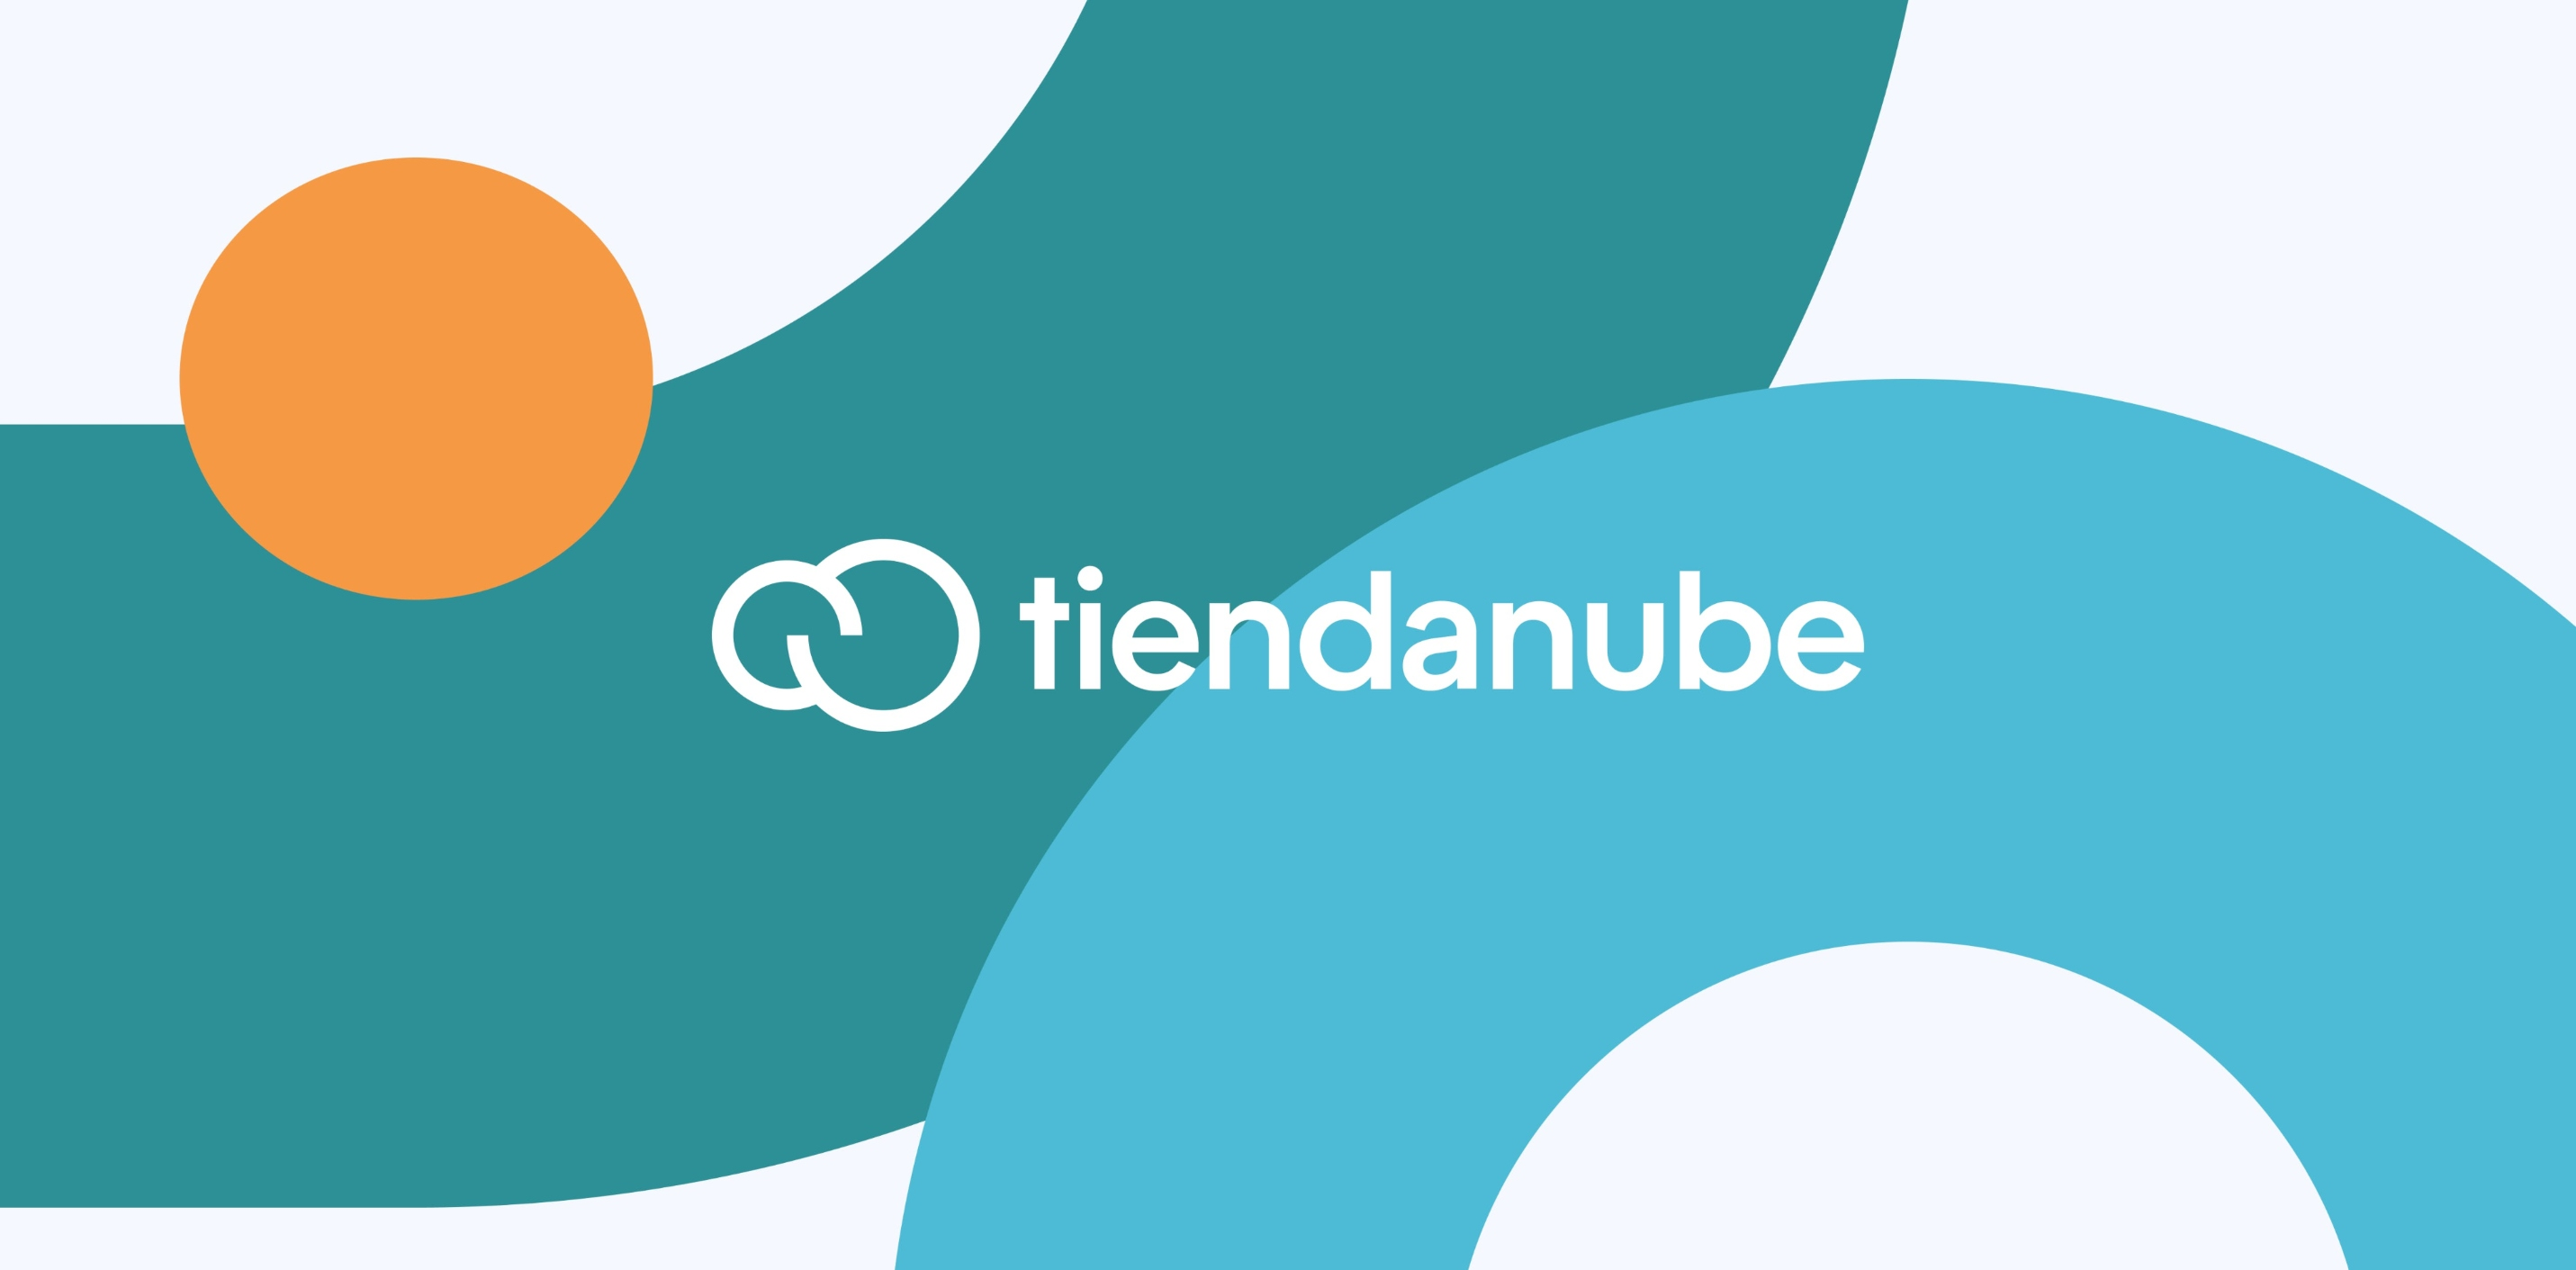 Tiendanube speeds up design iterations from weeks to days